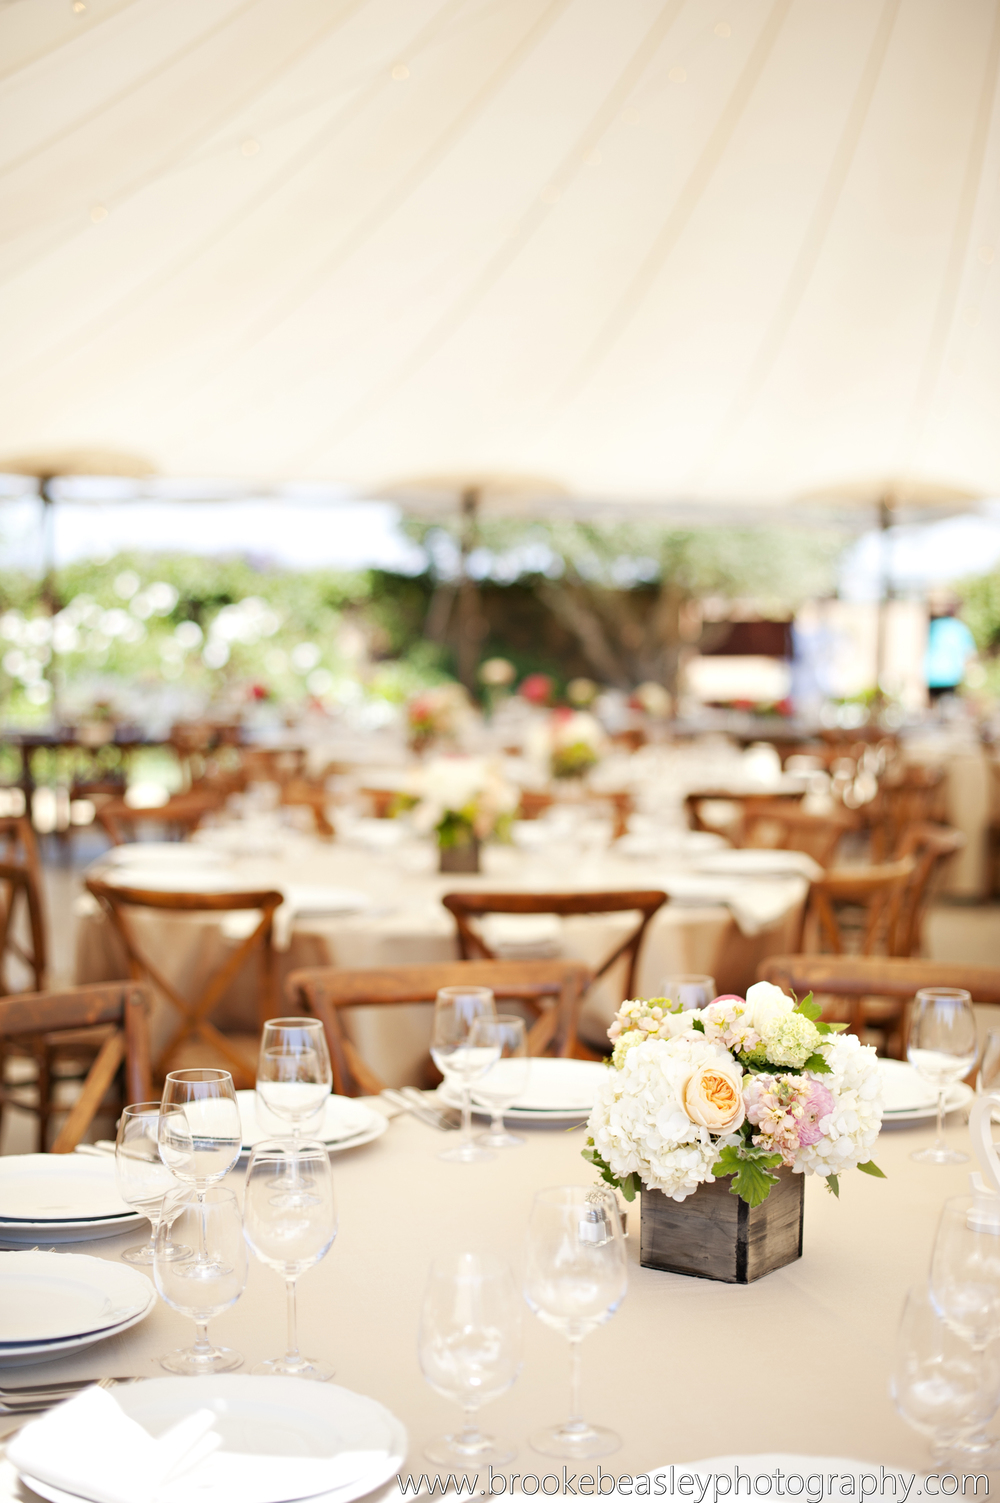 Brooke Beasley Photography | Cornerstone Sonoma